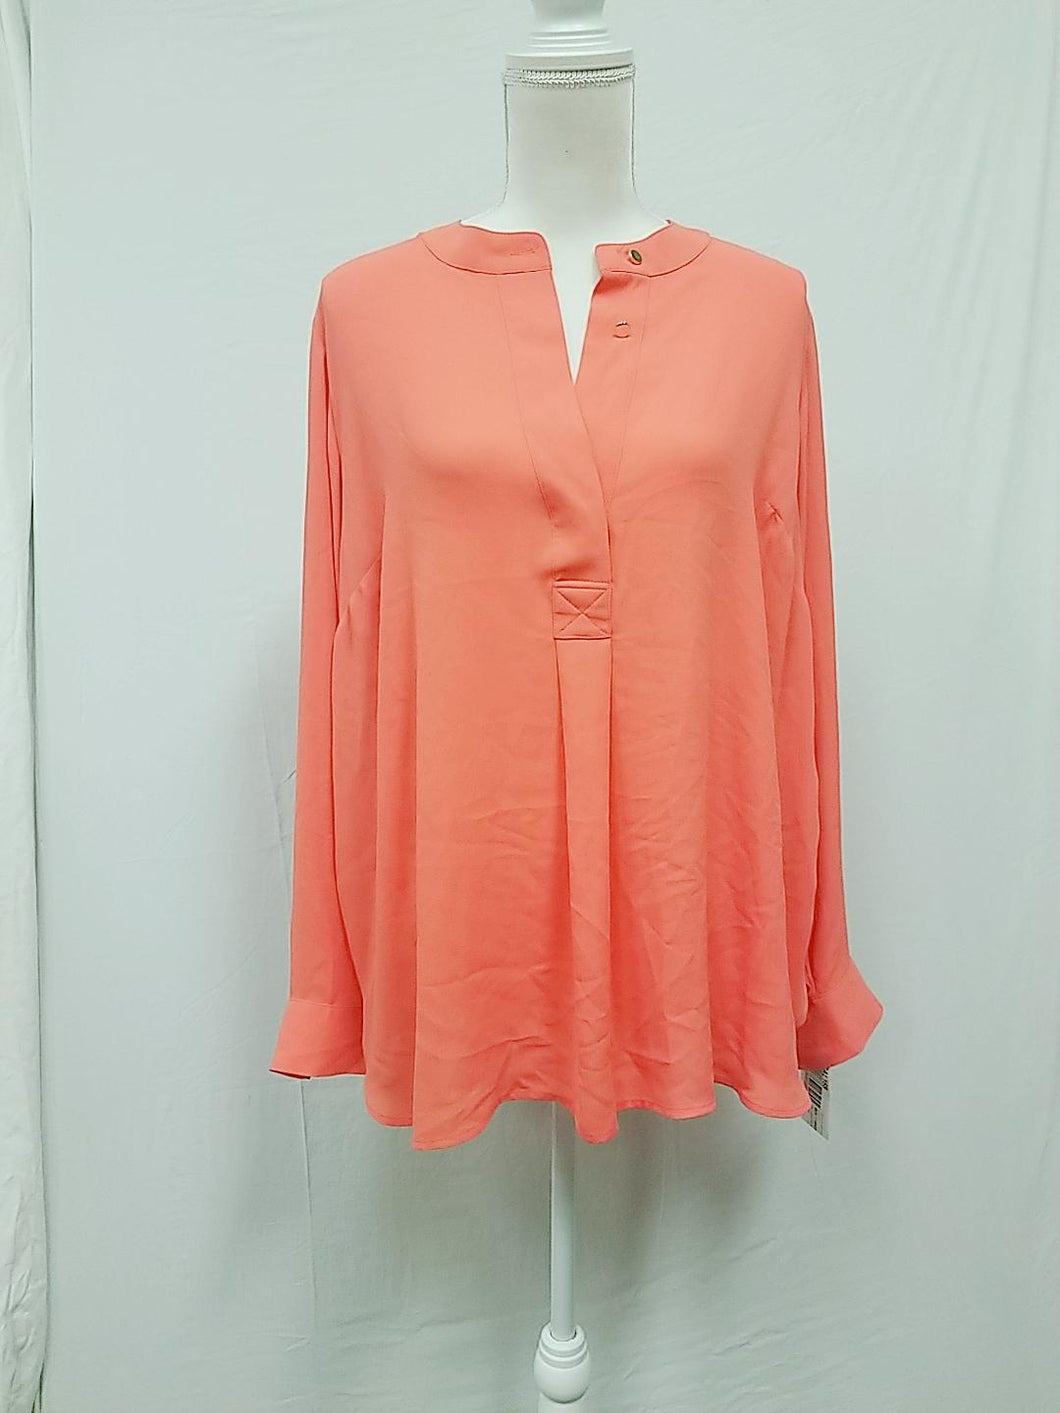 Charter Club coral plus size blouse 1X-NEW